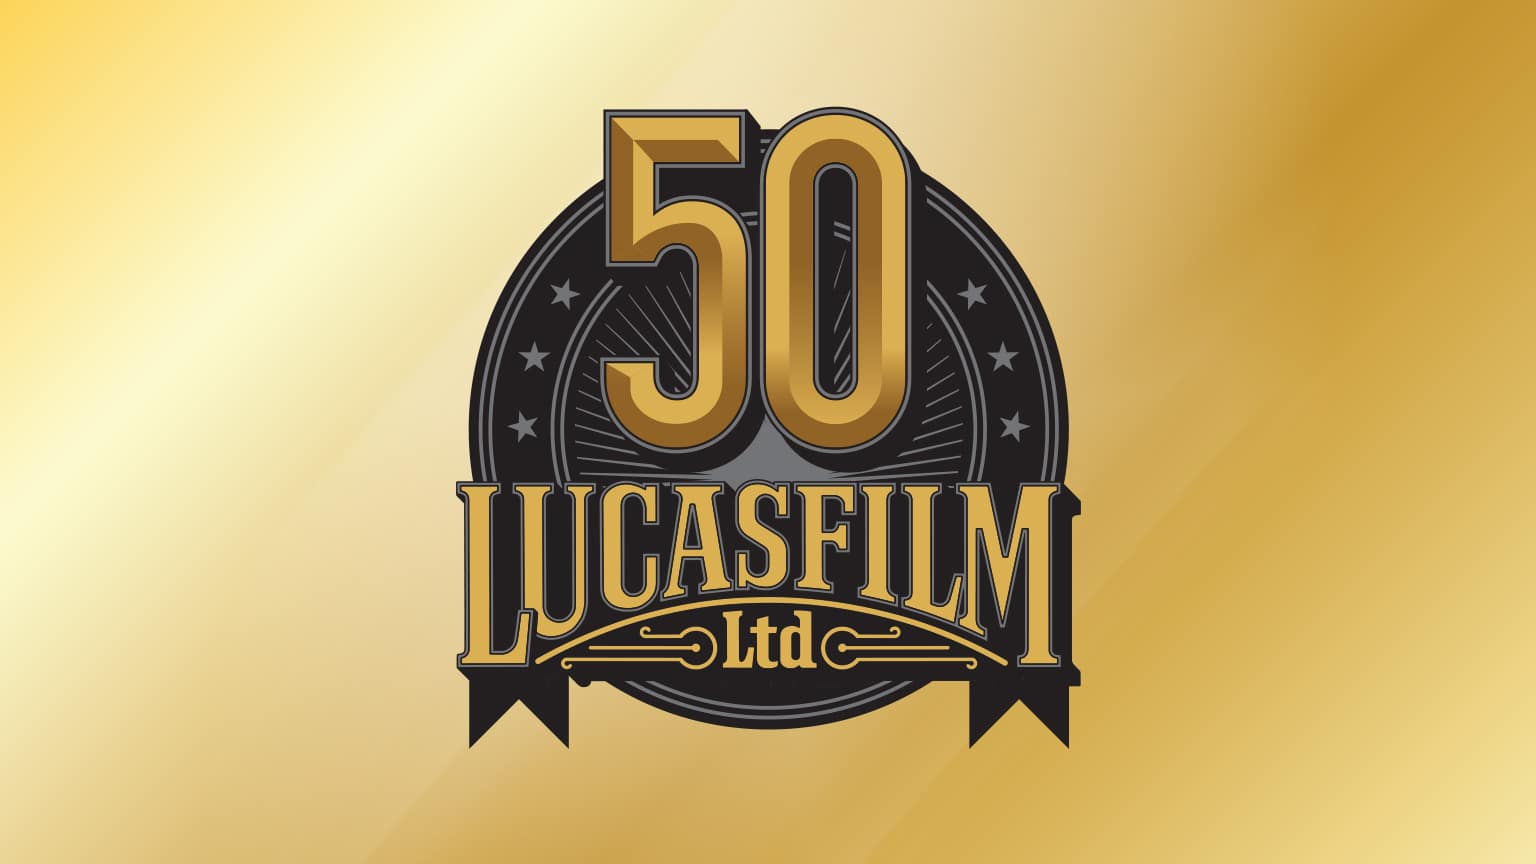 Lucasfilm Will Celebrate 50th Anniversary in 2021 With Special Star Wars Merch